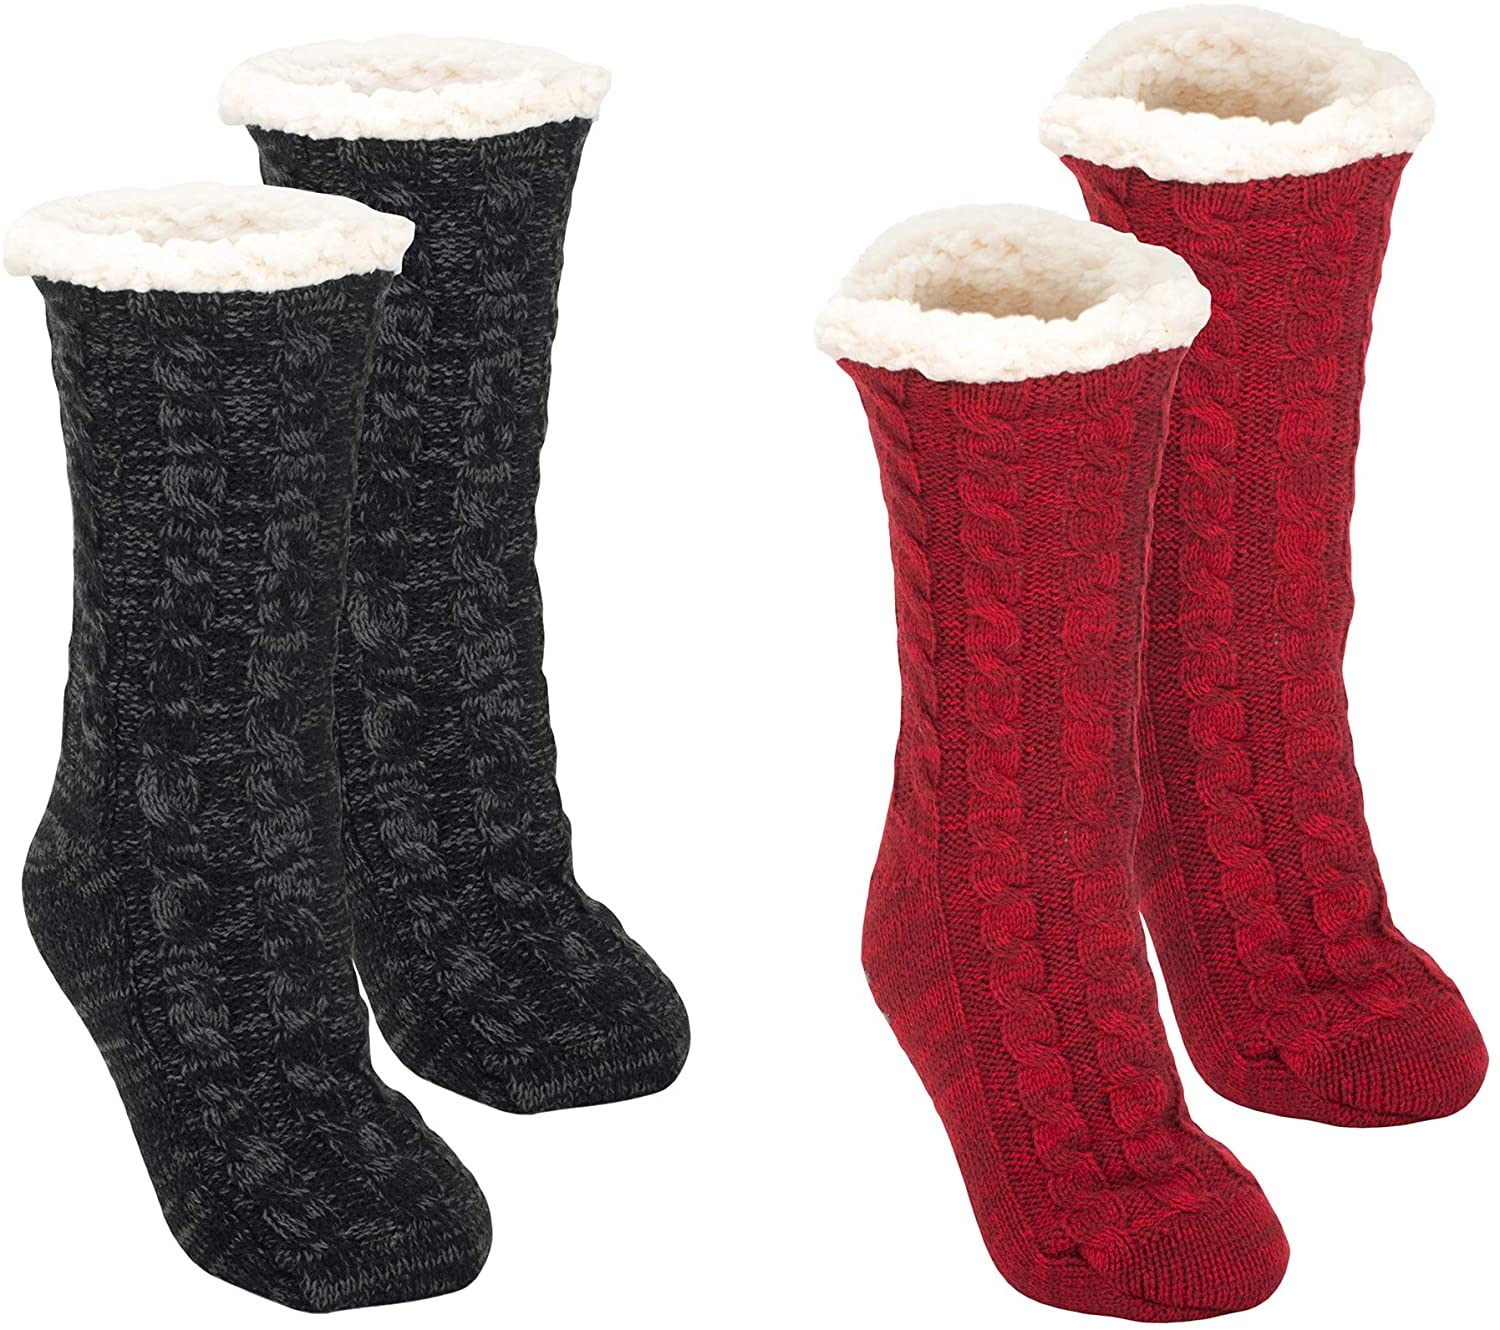 Simple Knit Womens One Size Plush Lined Non Skid Slipper Socks Pack of 2